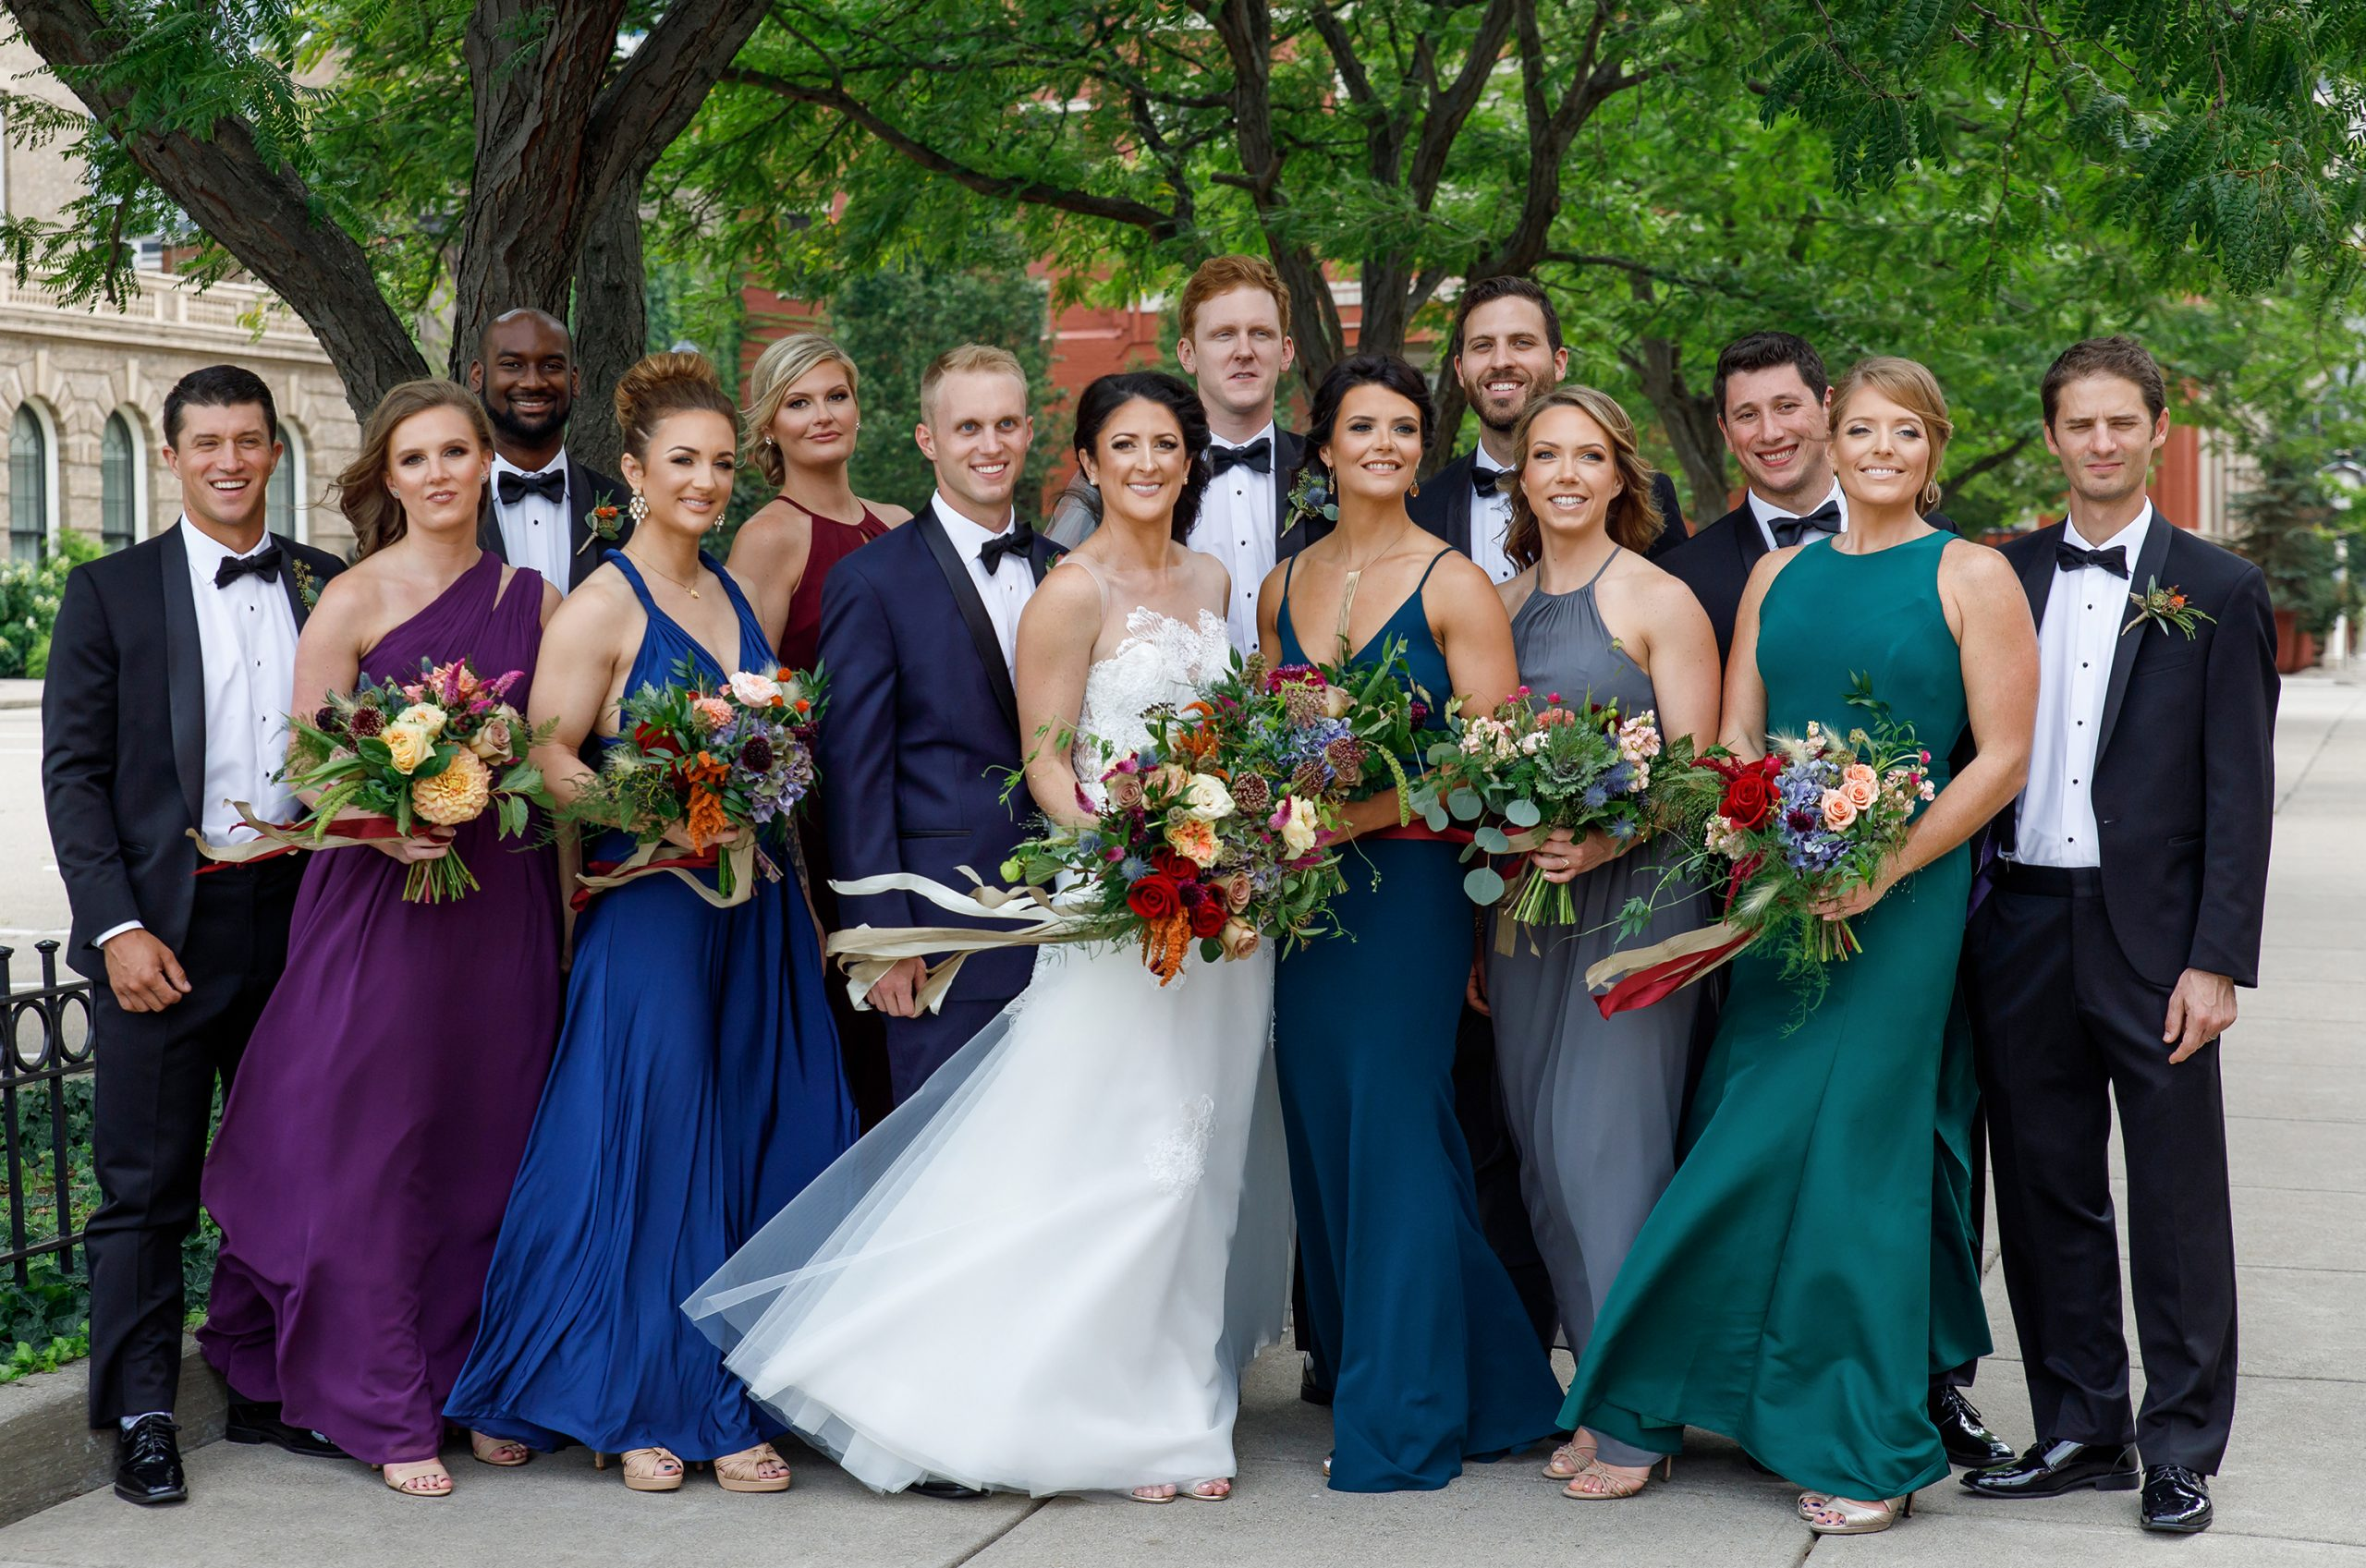 Colorful bridesmaids' dresses in a rich palette of purple, deep blue, crimson red, and teal are stunning with autumn field flowers of dahlias, roses, and hydrangea.